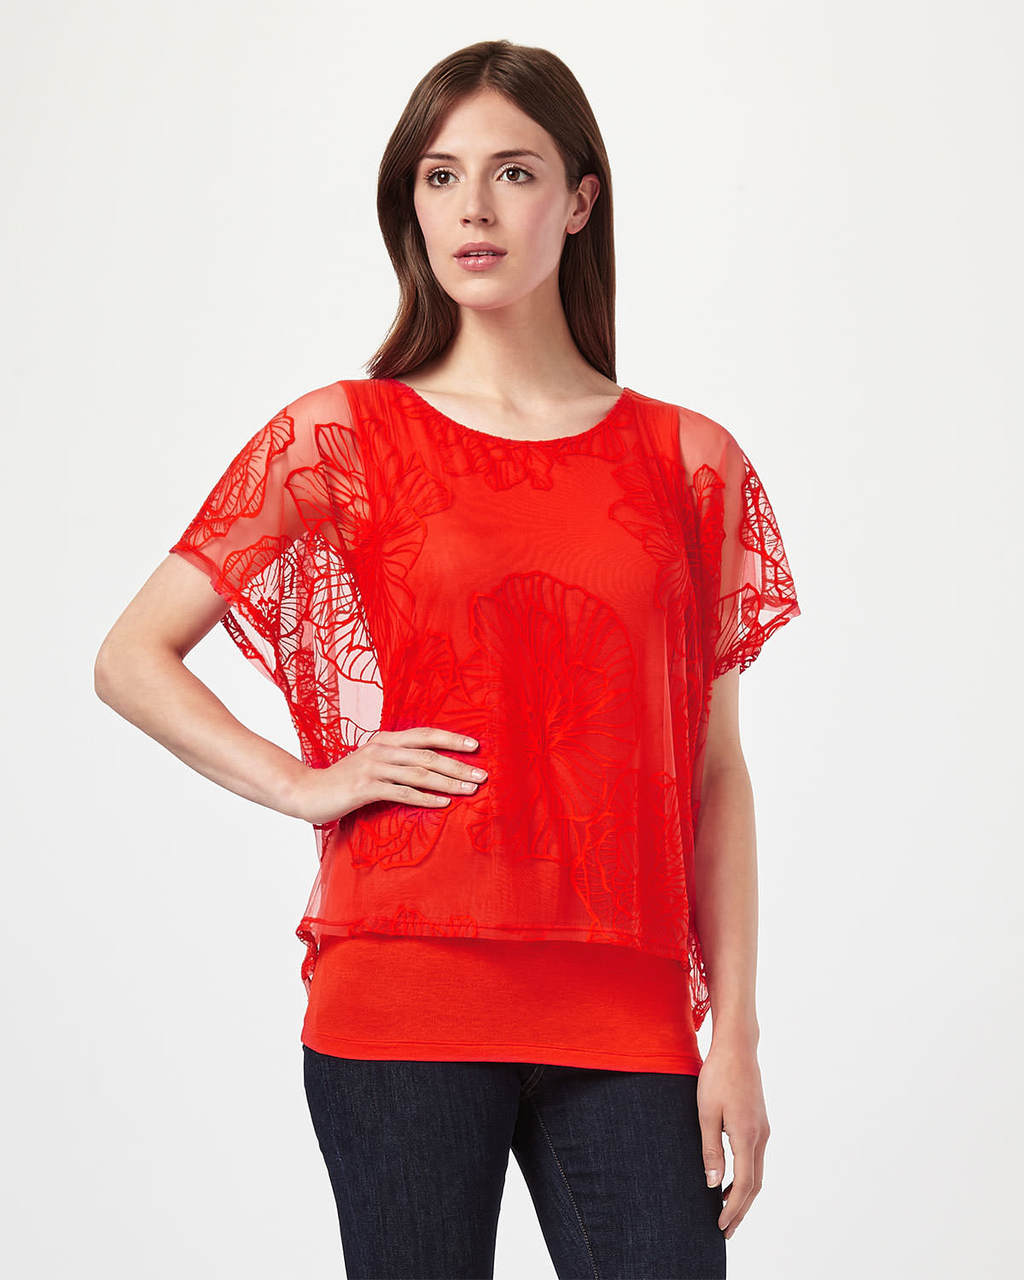 Cecily Dbl Layer Top - pattern: plain; predominant colour: bright orange; occasions: evening; length: standard; style: top; fit: body skimming; neckline: crew; sleeve length: short sleeve; sleeve style: standard; texture group: lace; pattern type: fabric; fibres: viscose/rayon - mix; embellishment: lace; shoulder detail: sheer at shoulder; season: s/s 2016; wardrobe: event